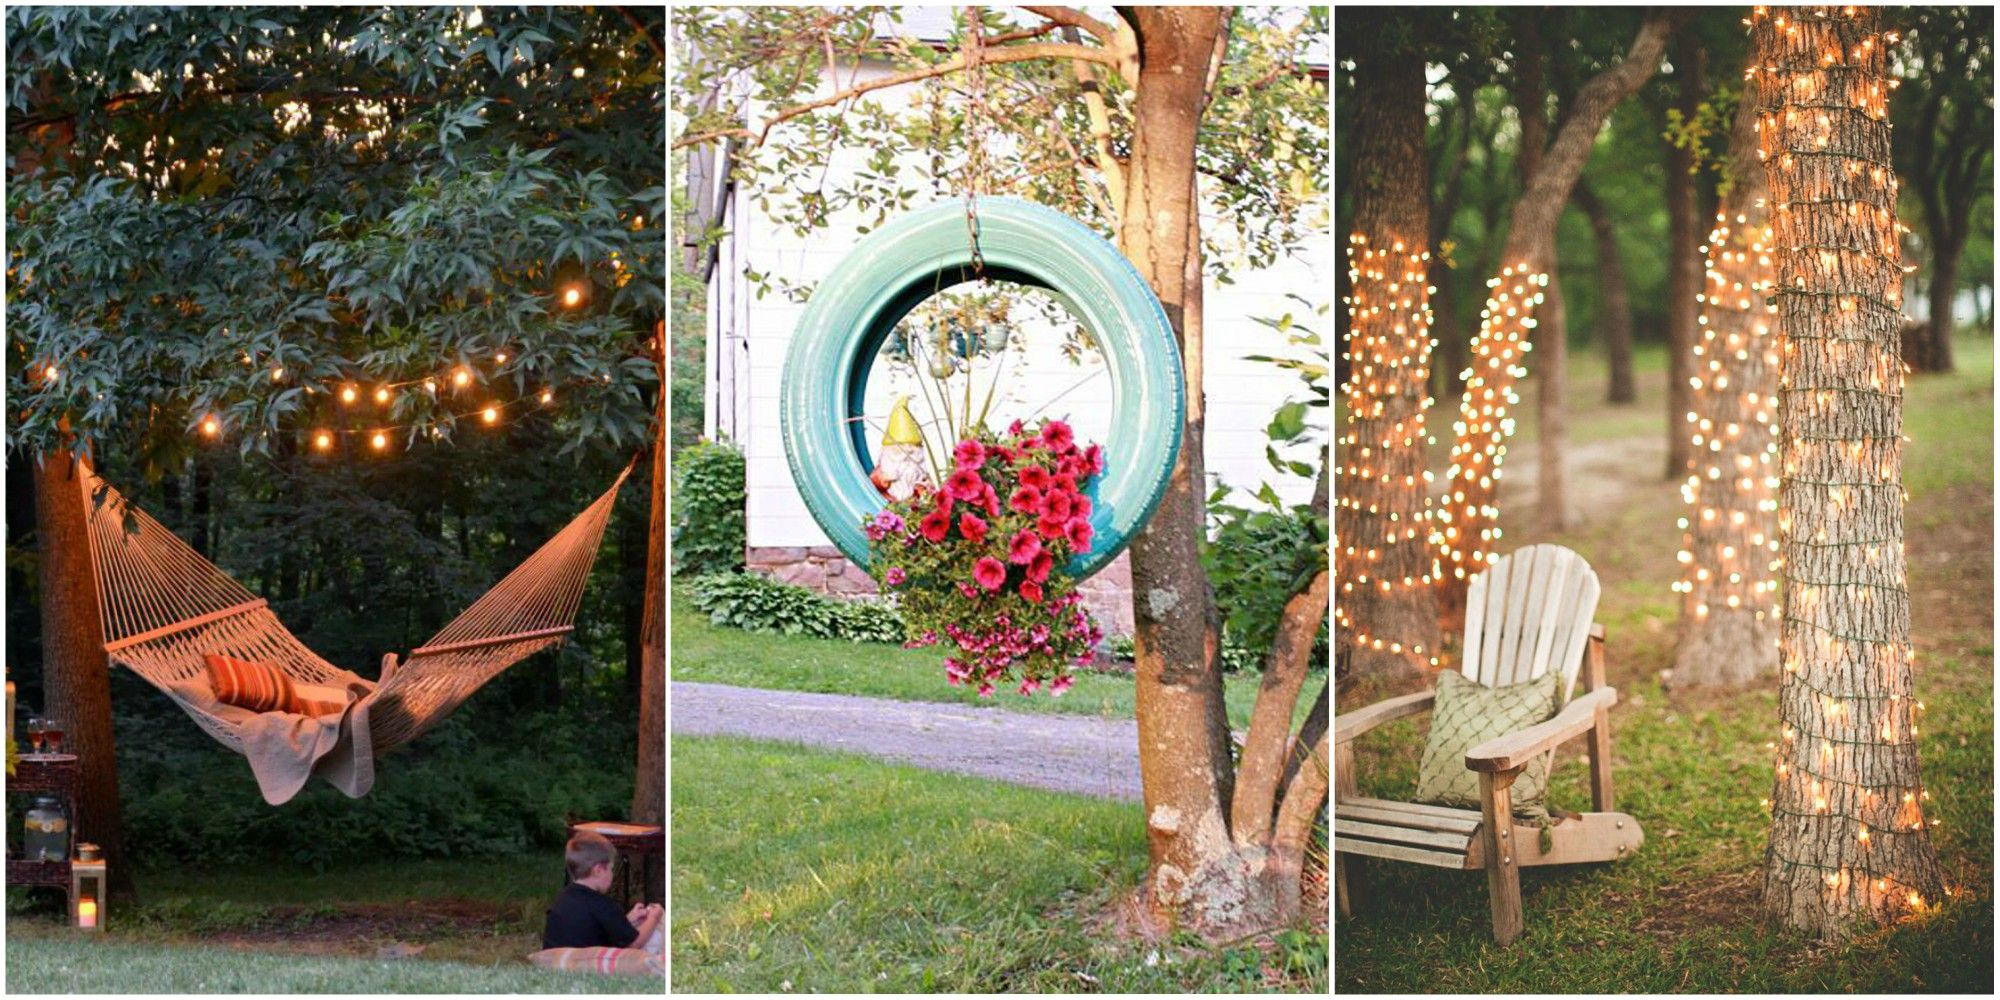 67 Ideas That Will Beautify Your Backyard (Without Breaking the Bank)